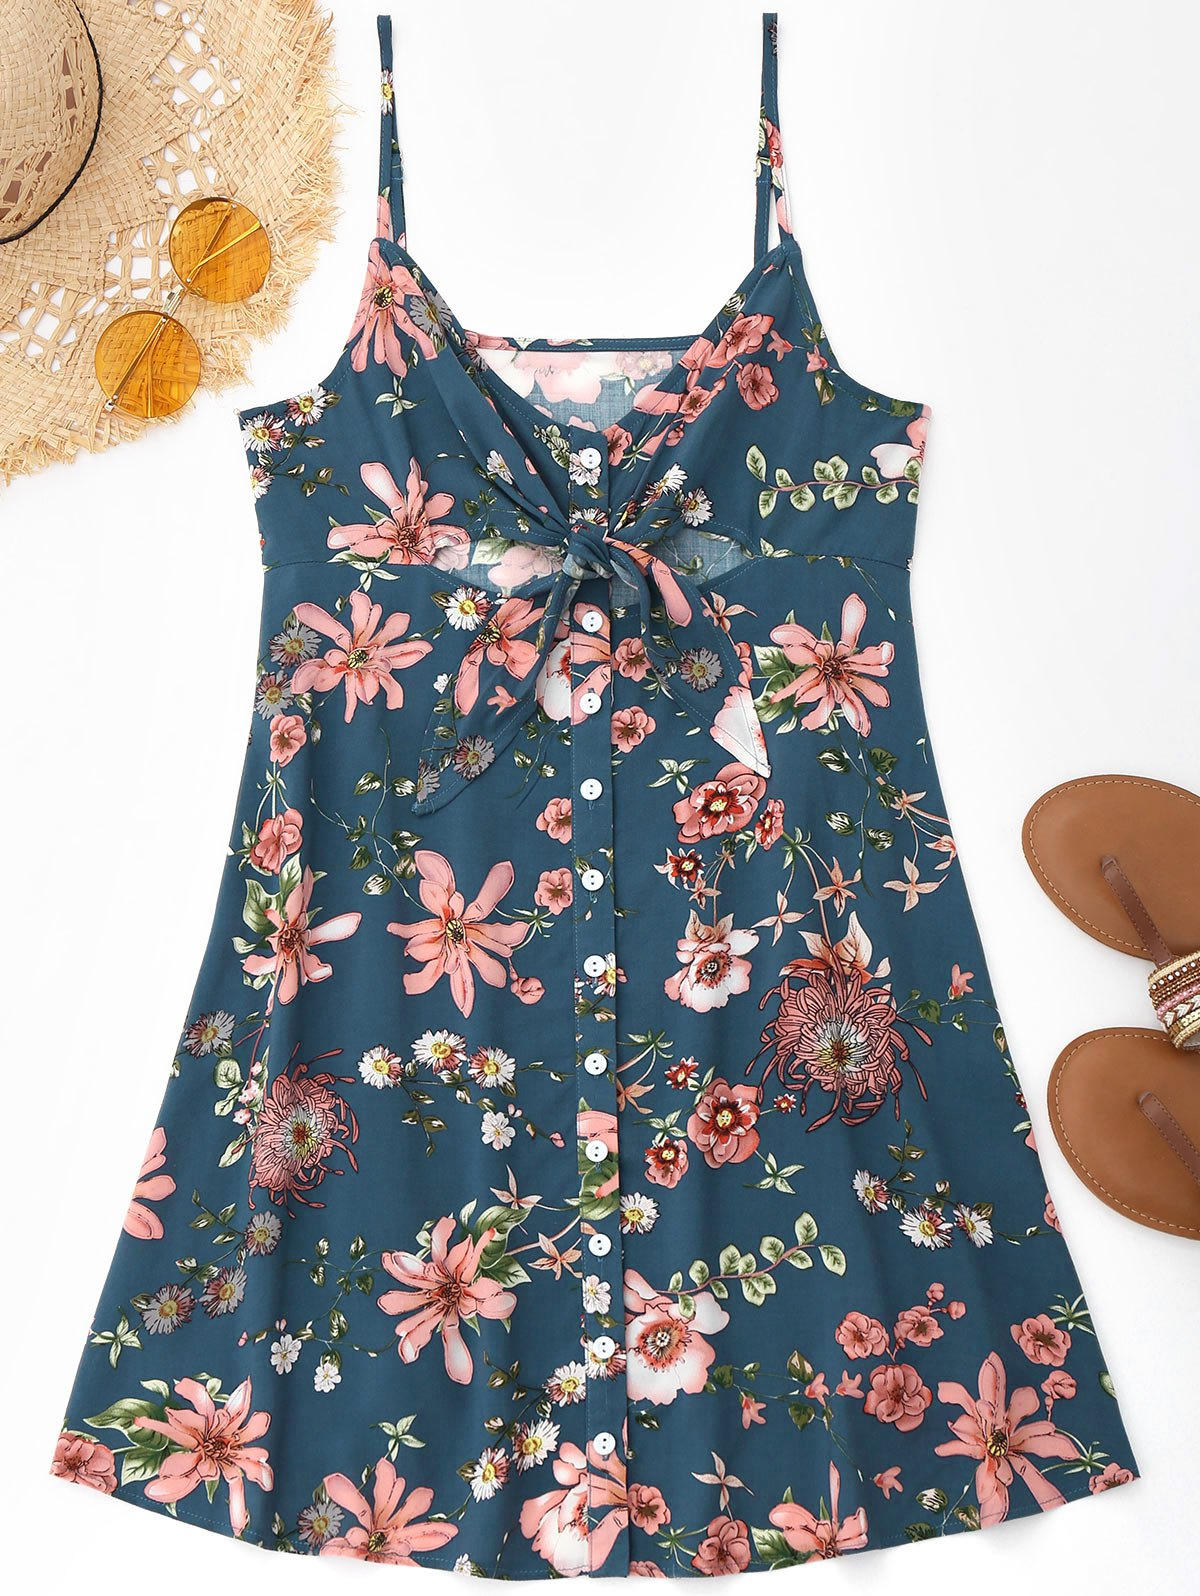 Cami Tied Floral Cut Out Slit Beach Dress